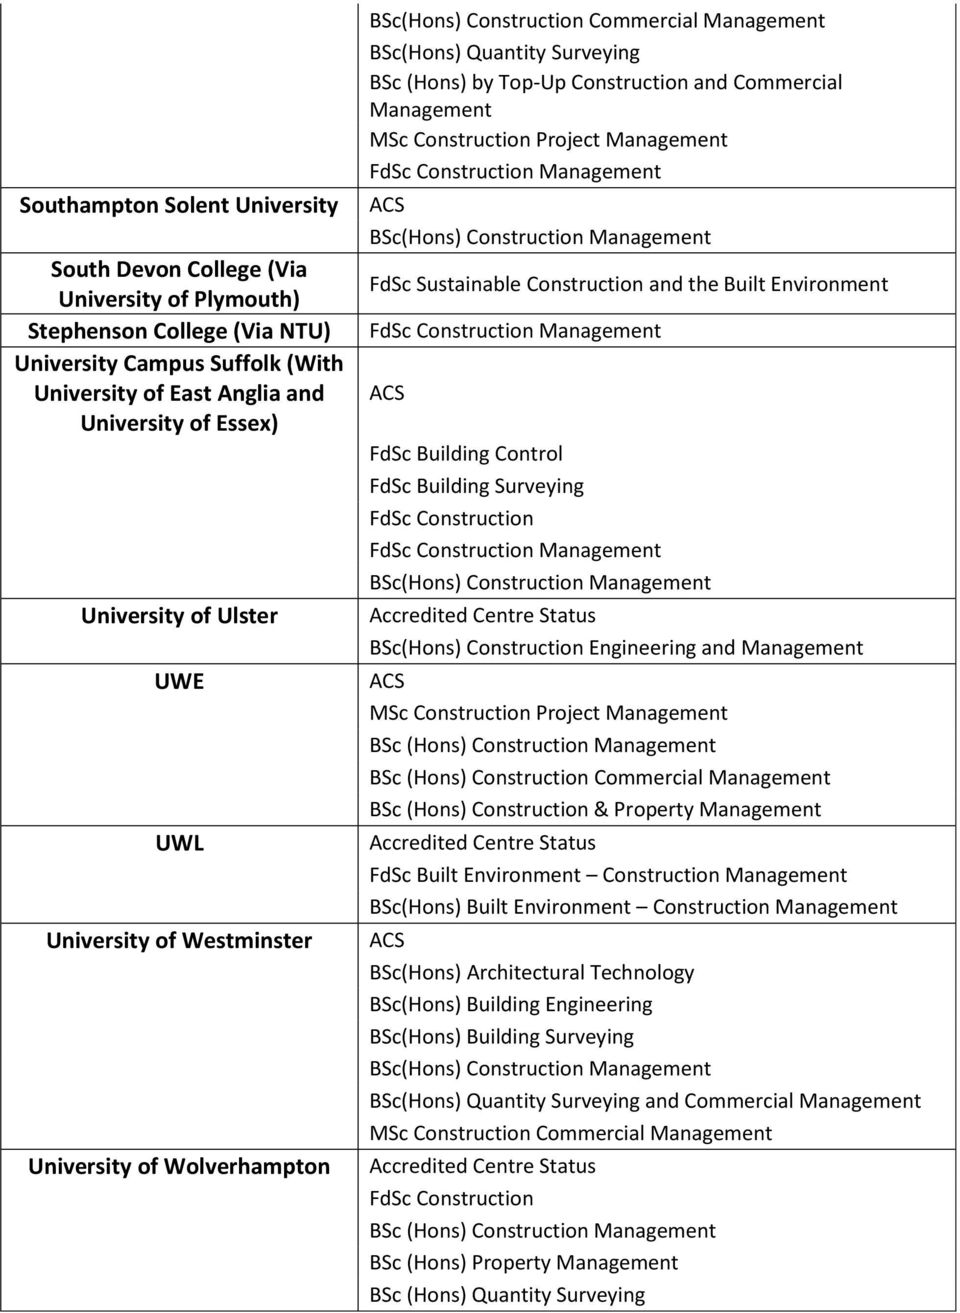 Sustainable Construction and the Built Environment FdSc Building Control FdSc Building Surveying BSc(Hons) Construction Engineering and Management BSc (Hons) Construction Commercial Management BSc